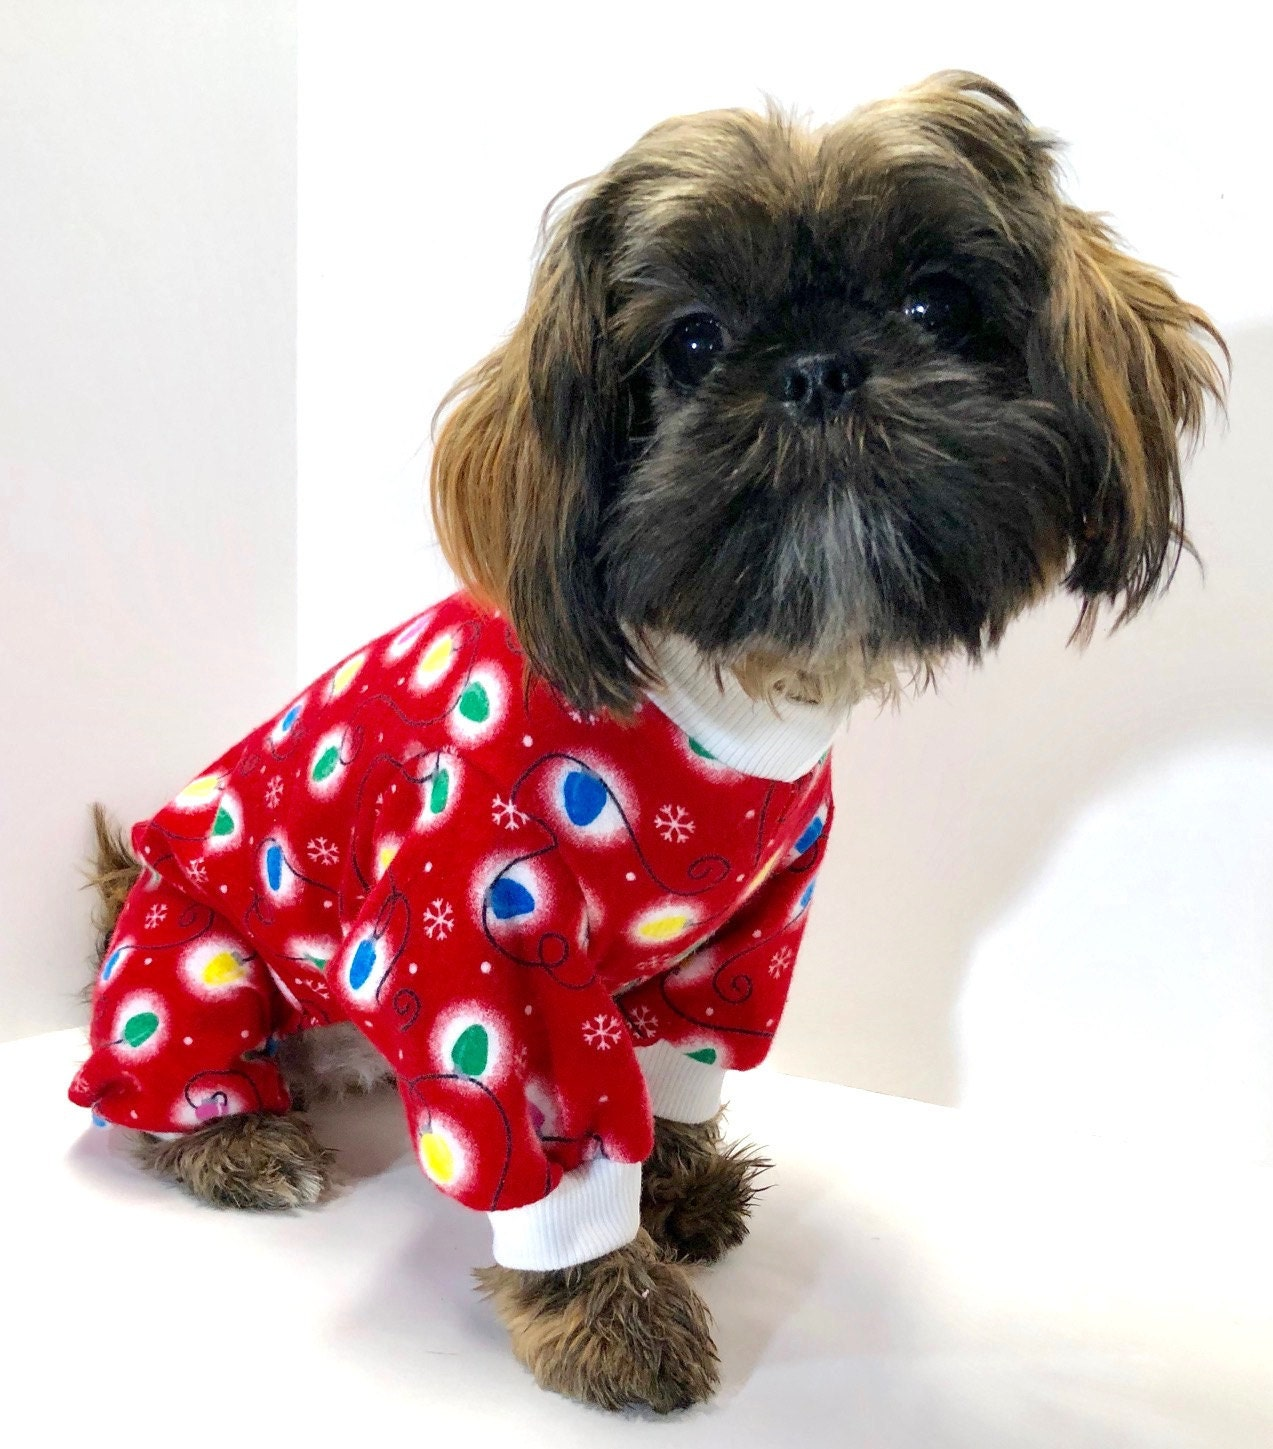 our rescue shih tzu wearing christmas onesie. she is such a sweetheart.